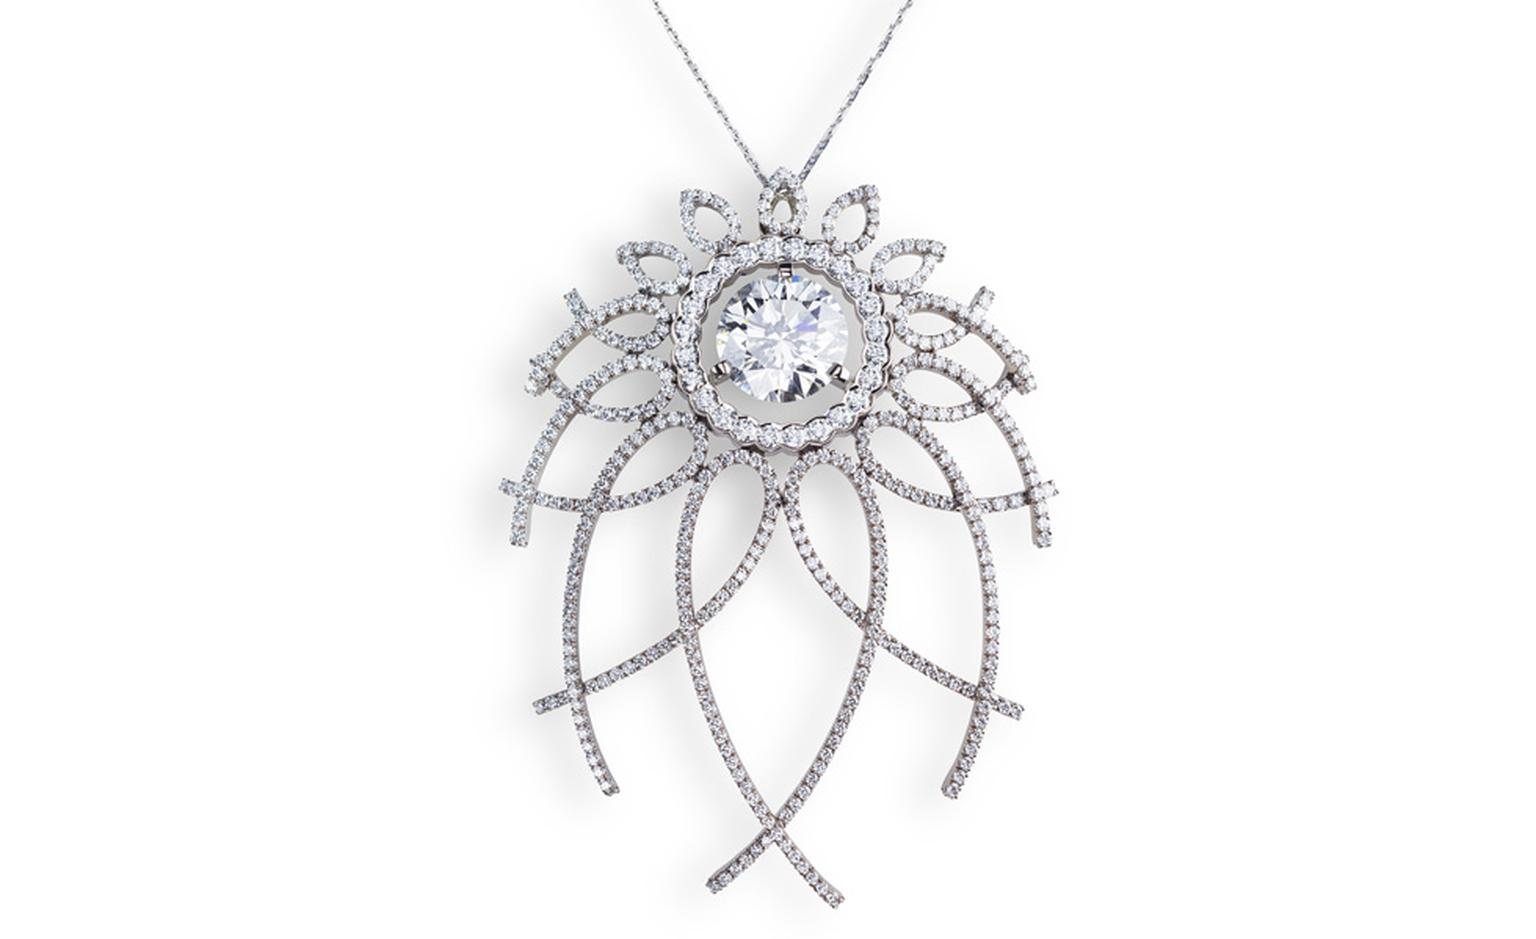 Fabergé Carnet de Bal Trelliage pendant with a 4-carat white diamond. The design is inspired by the 1892 Diamond Trellis Imperial Egg by the original Peter Carl Fabergé. POA